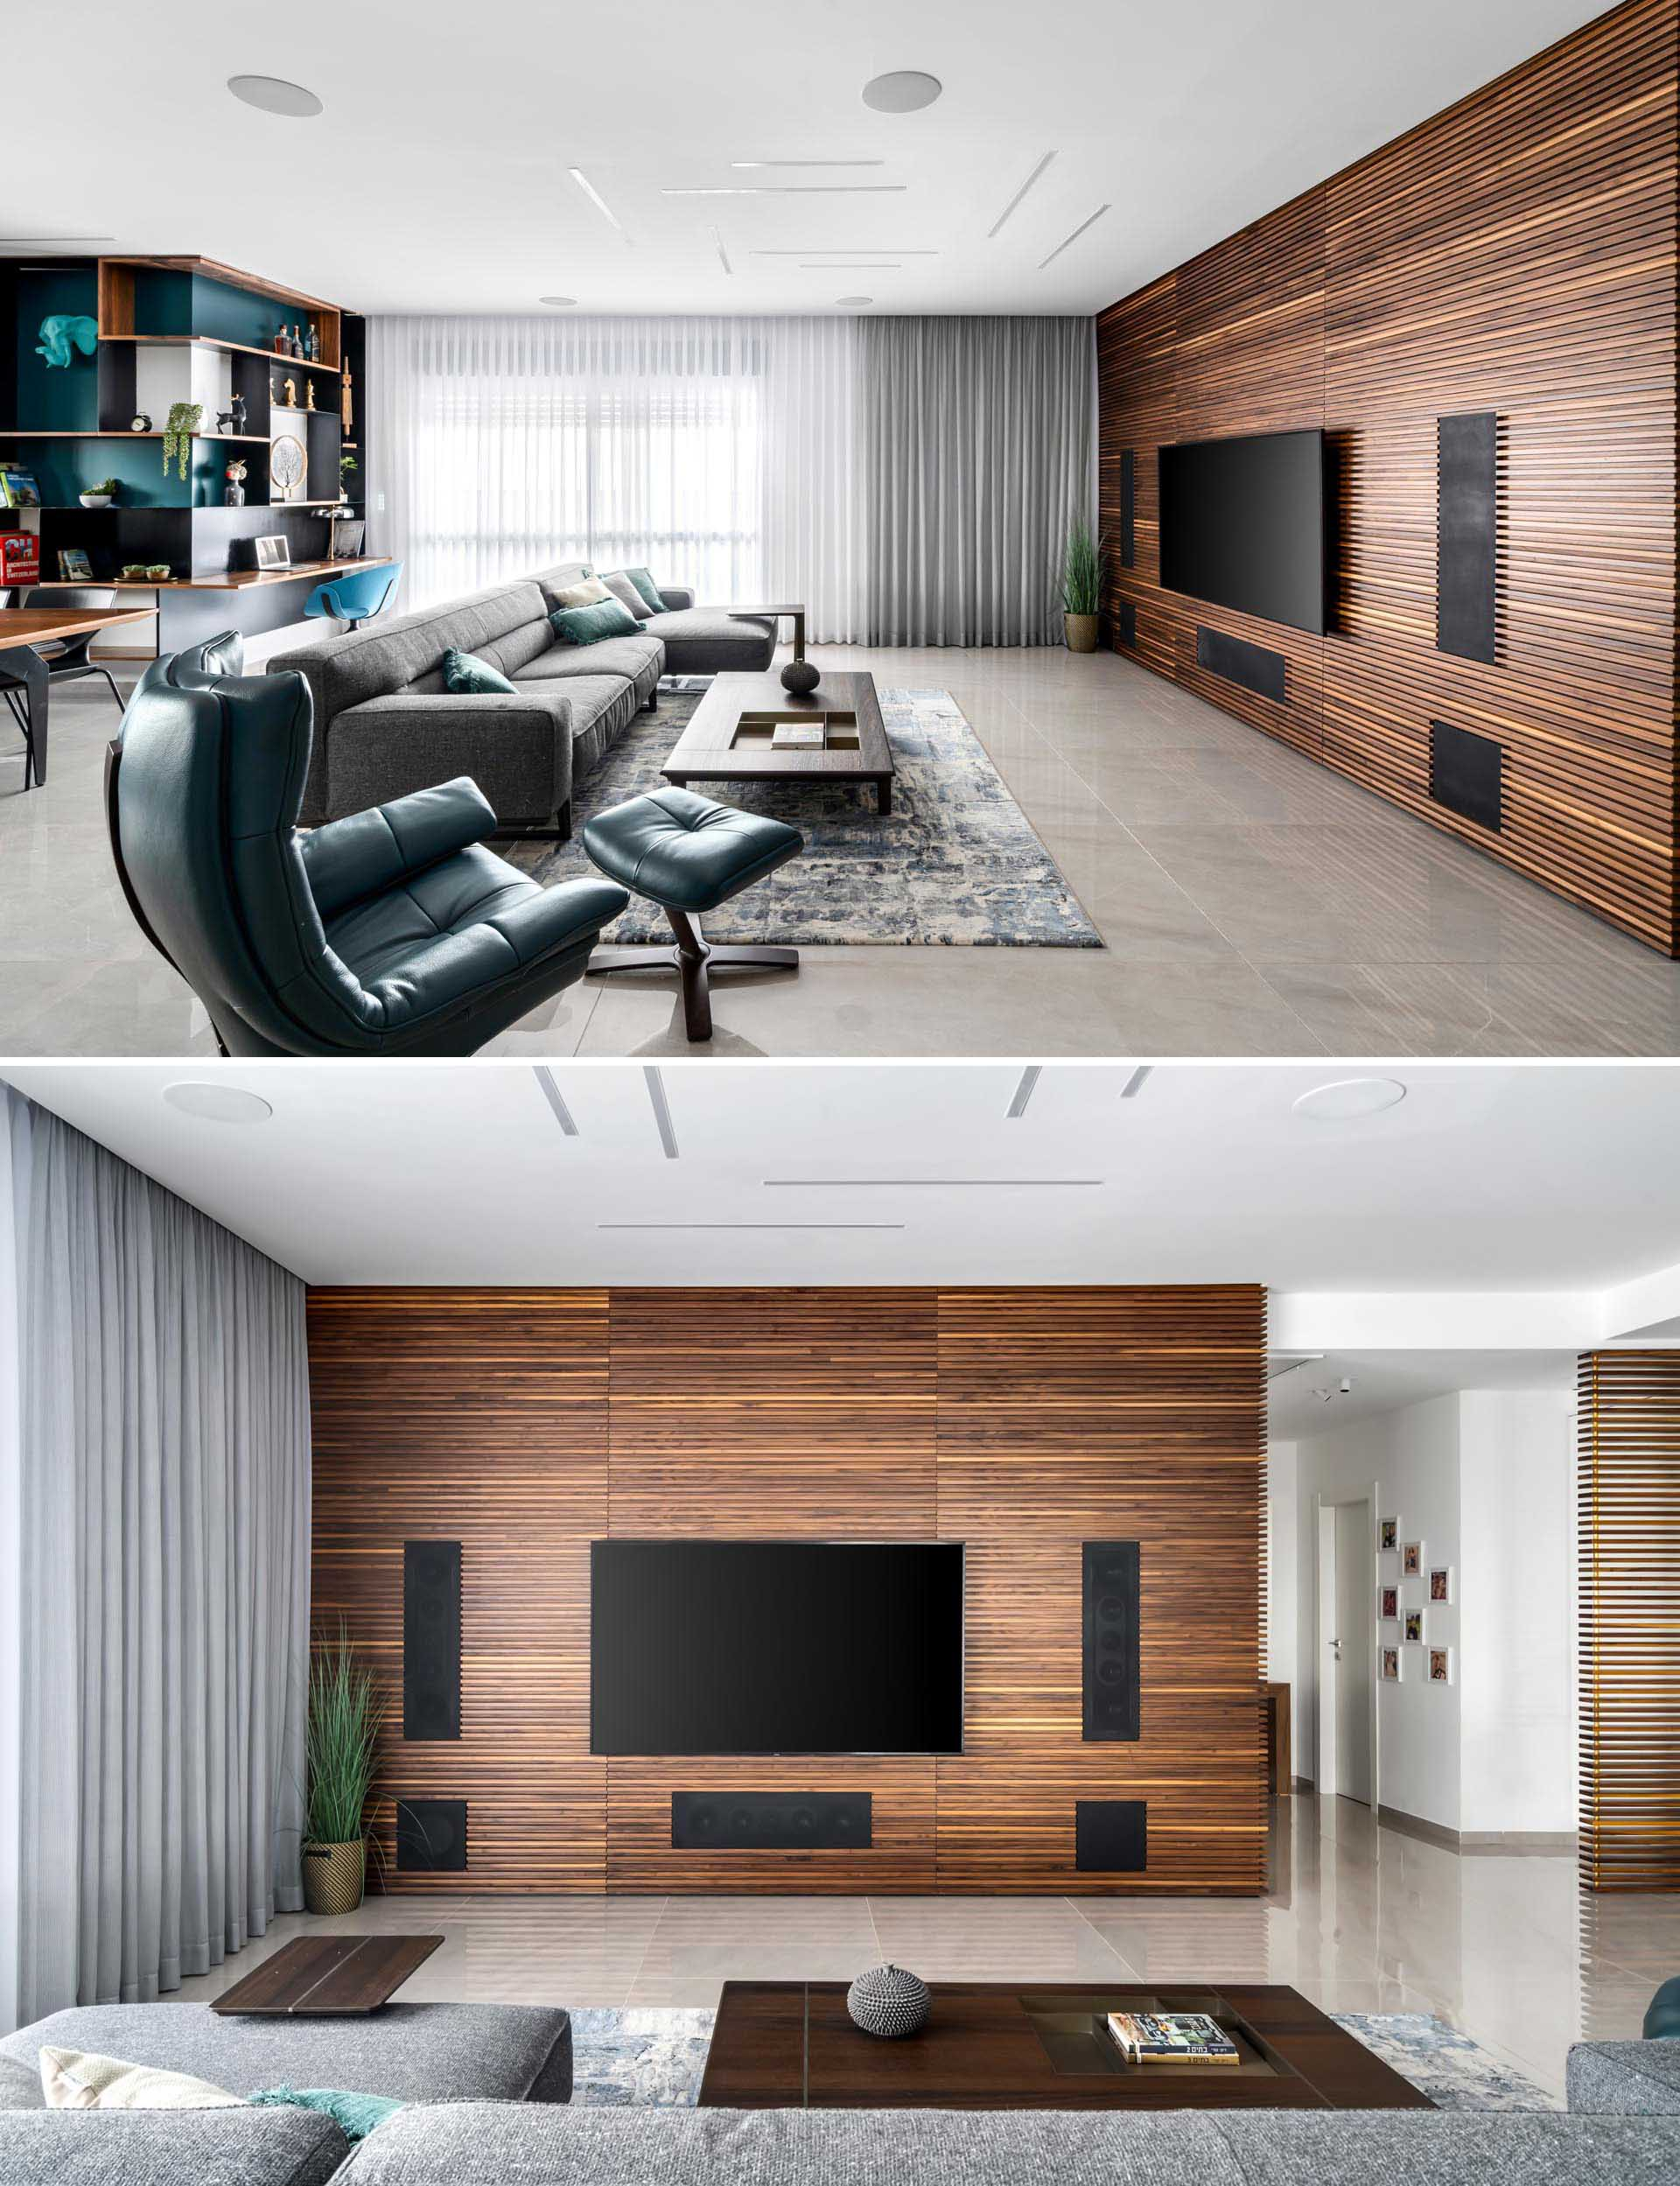 In this modern living room, a wood slat accent wall made from walnut becomes the backdrop for the television